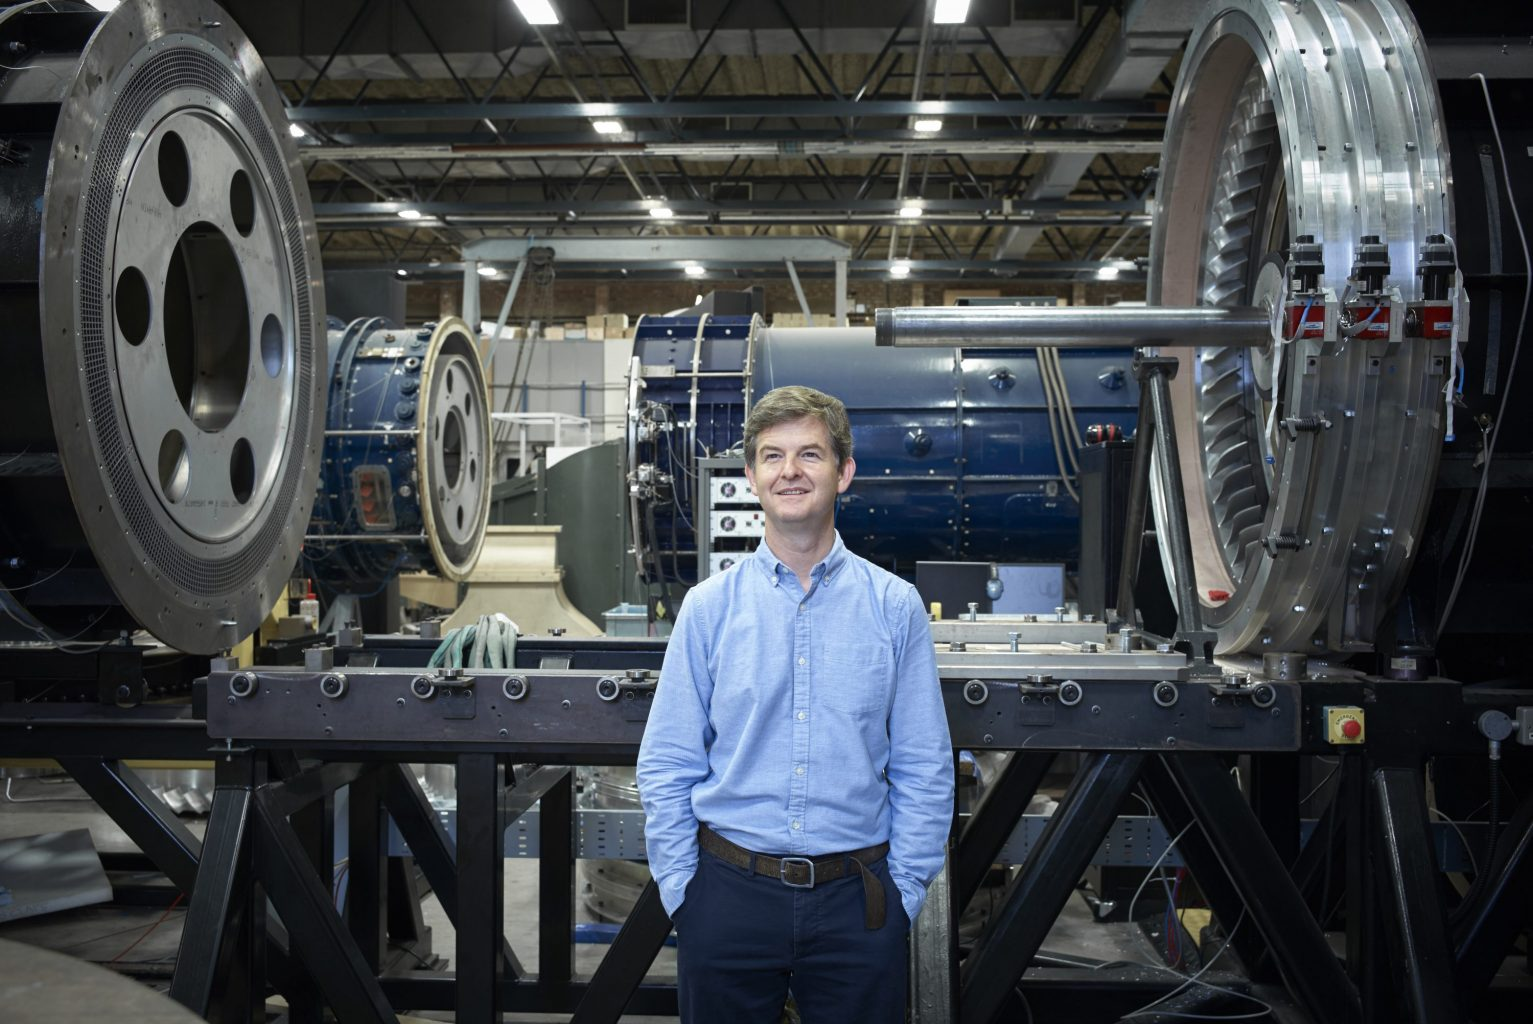 Professor Rob Miller standing in front of engine